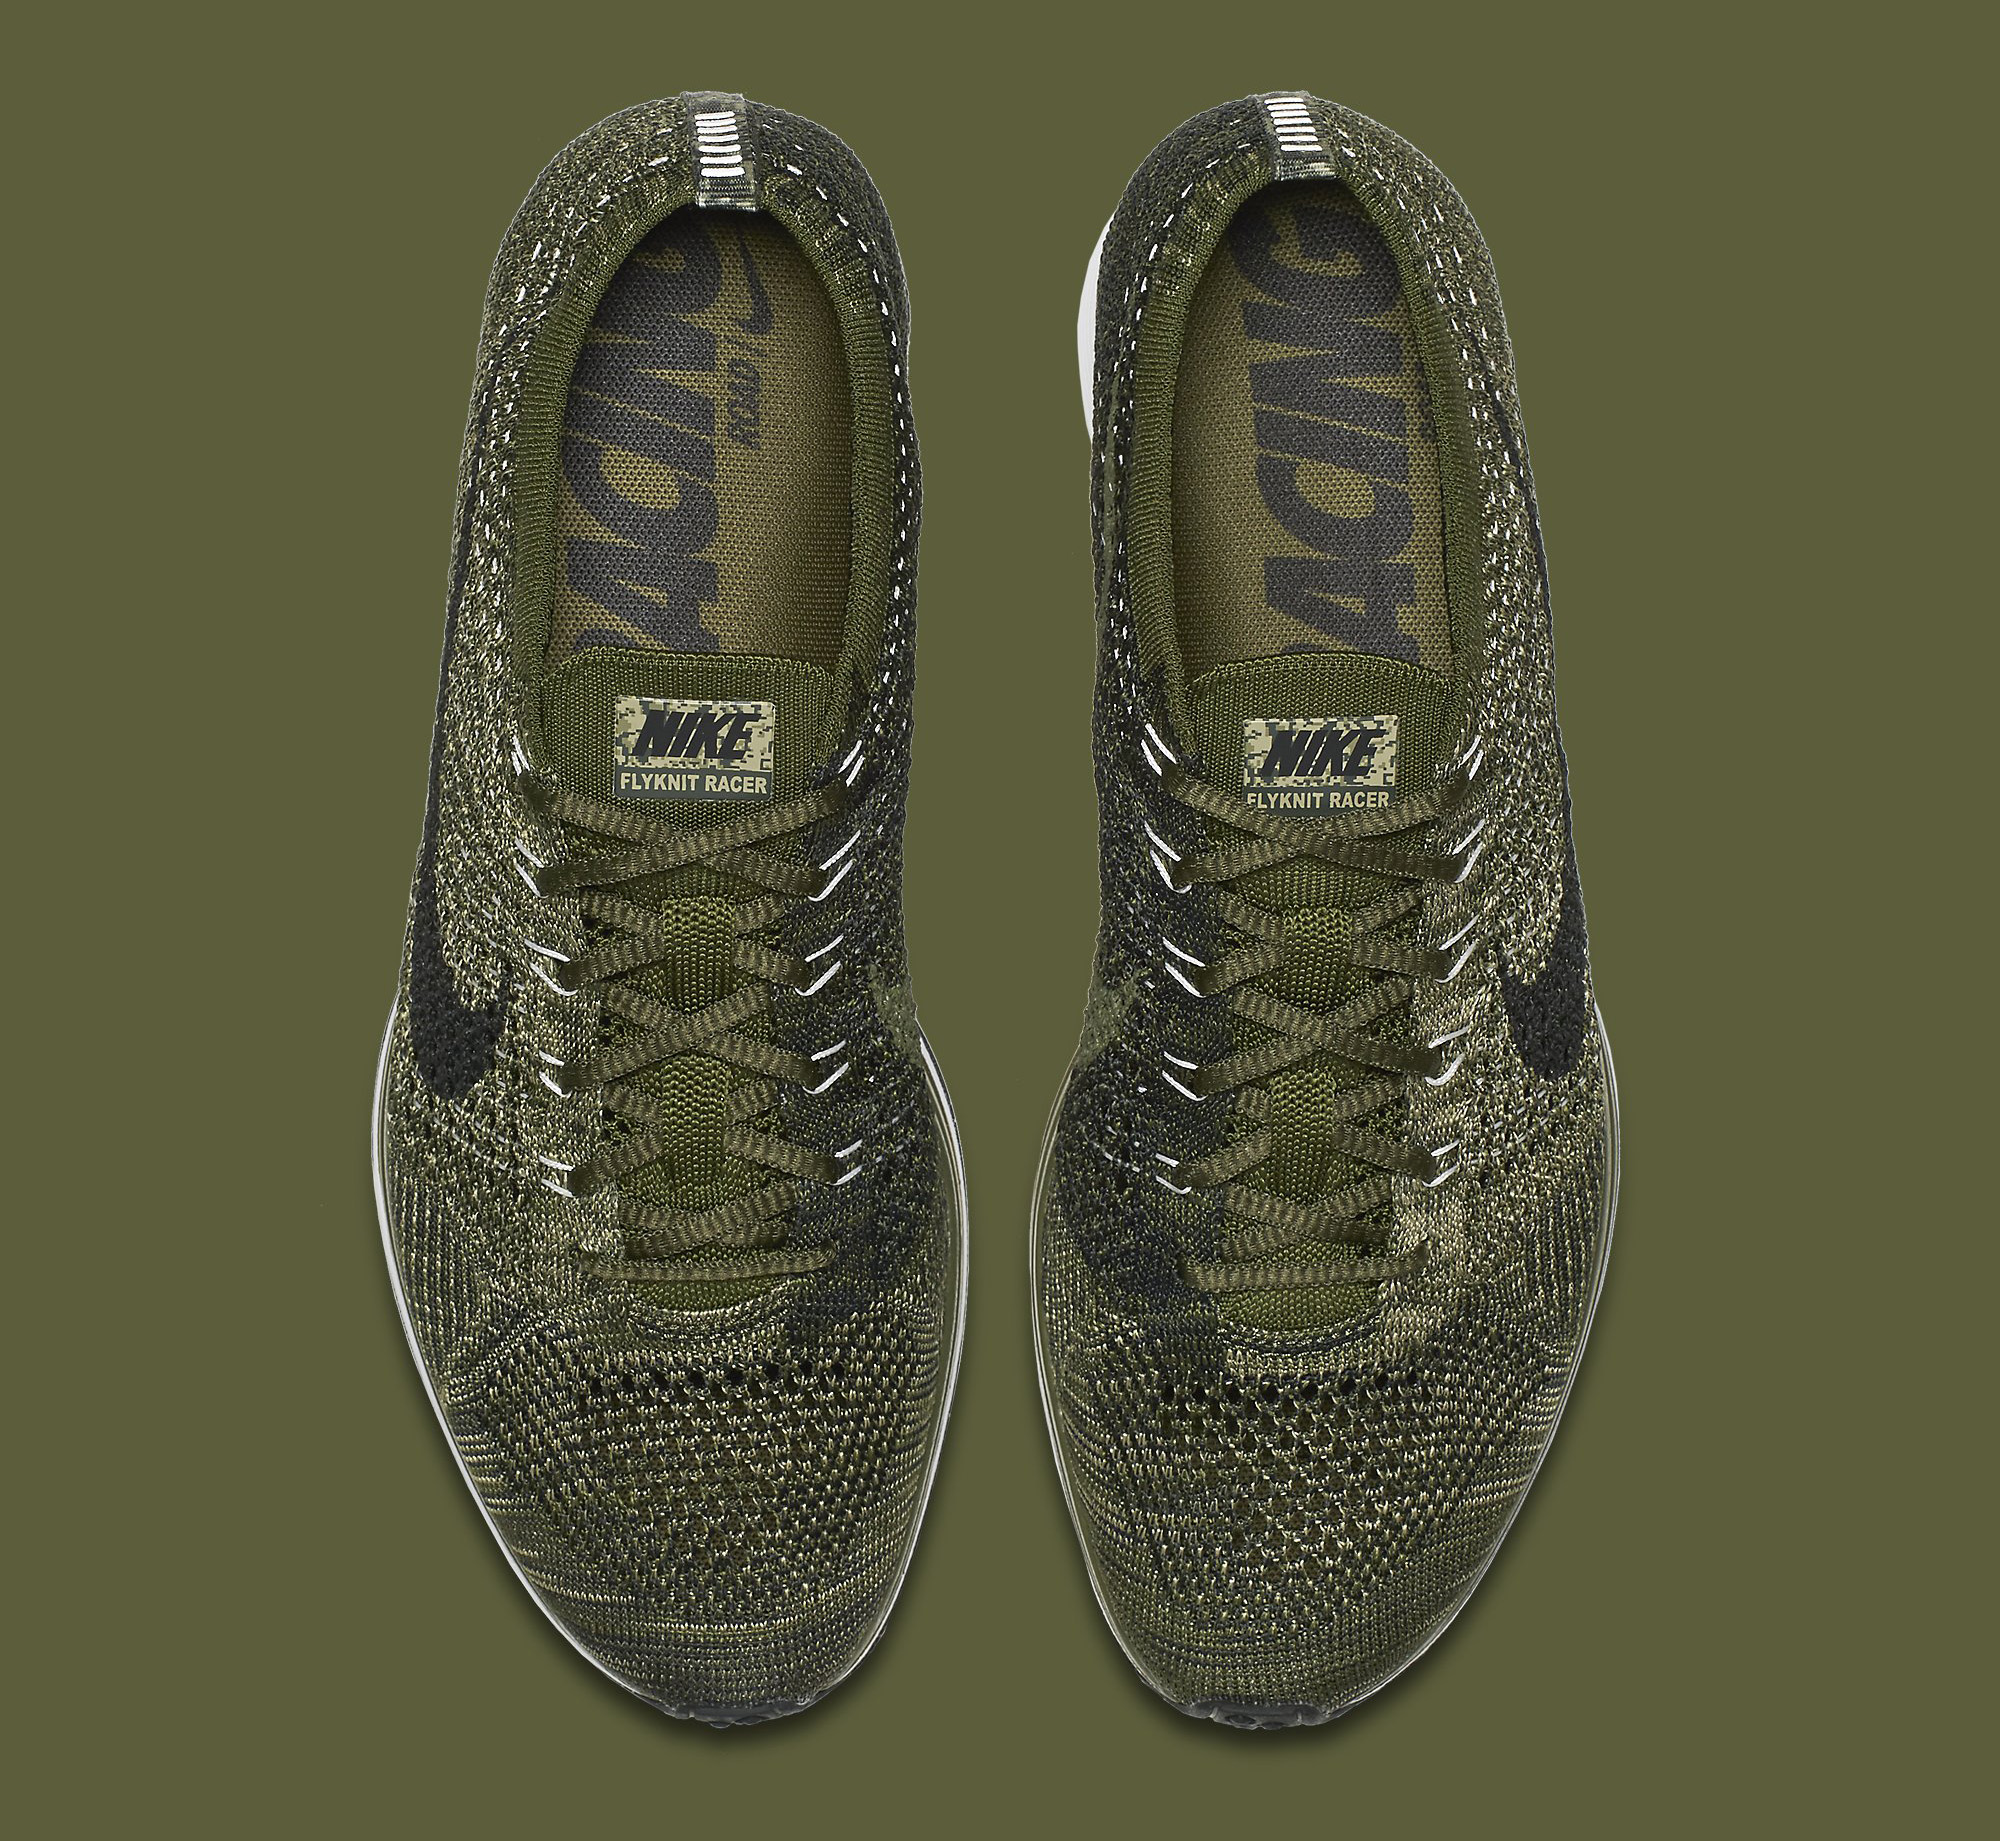 separation shoes f7841 c5b71 Image via Nike Nike Flyknit Racer Green Camo 862713-300 Top